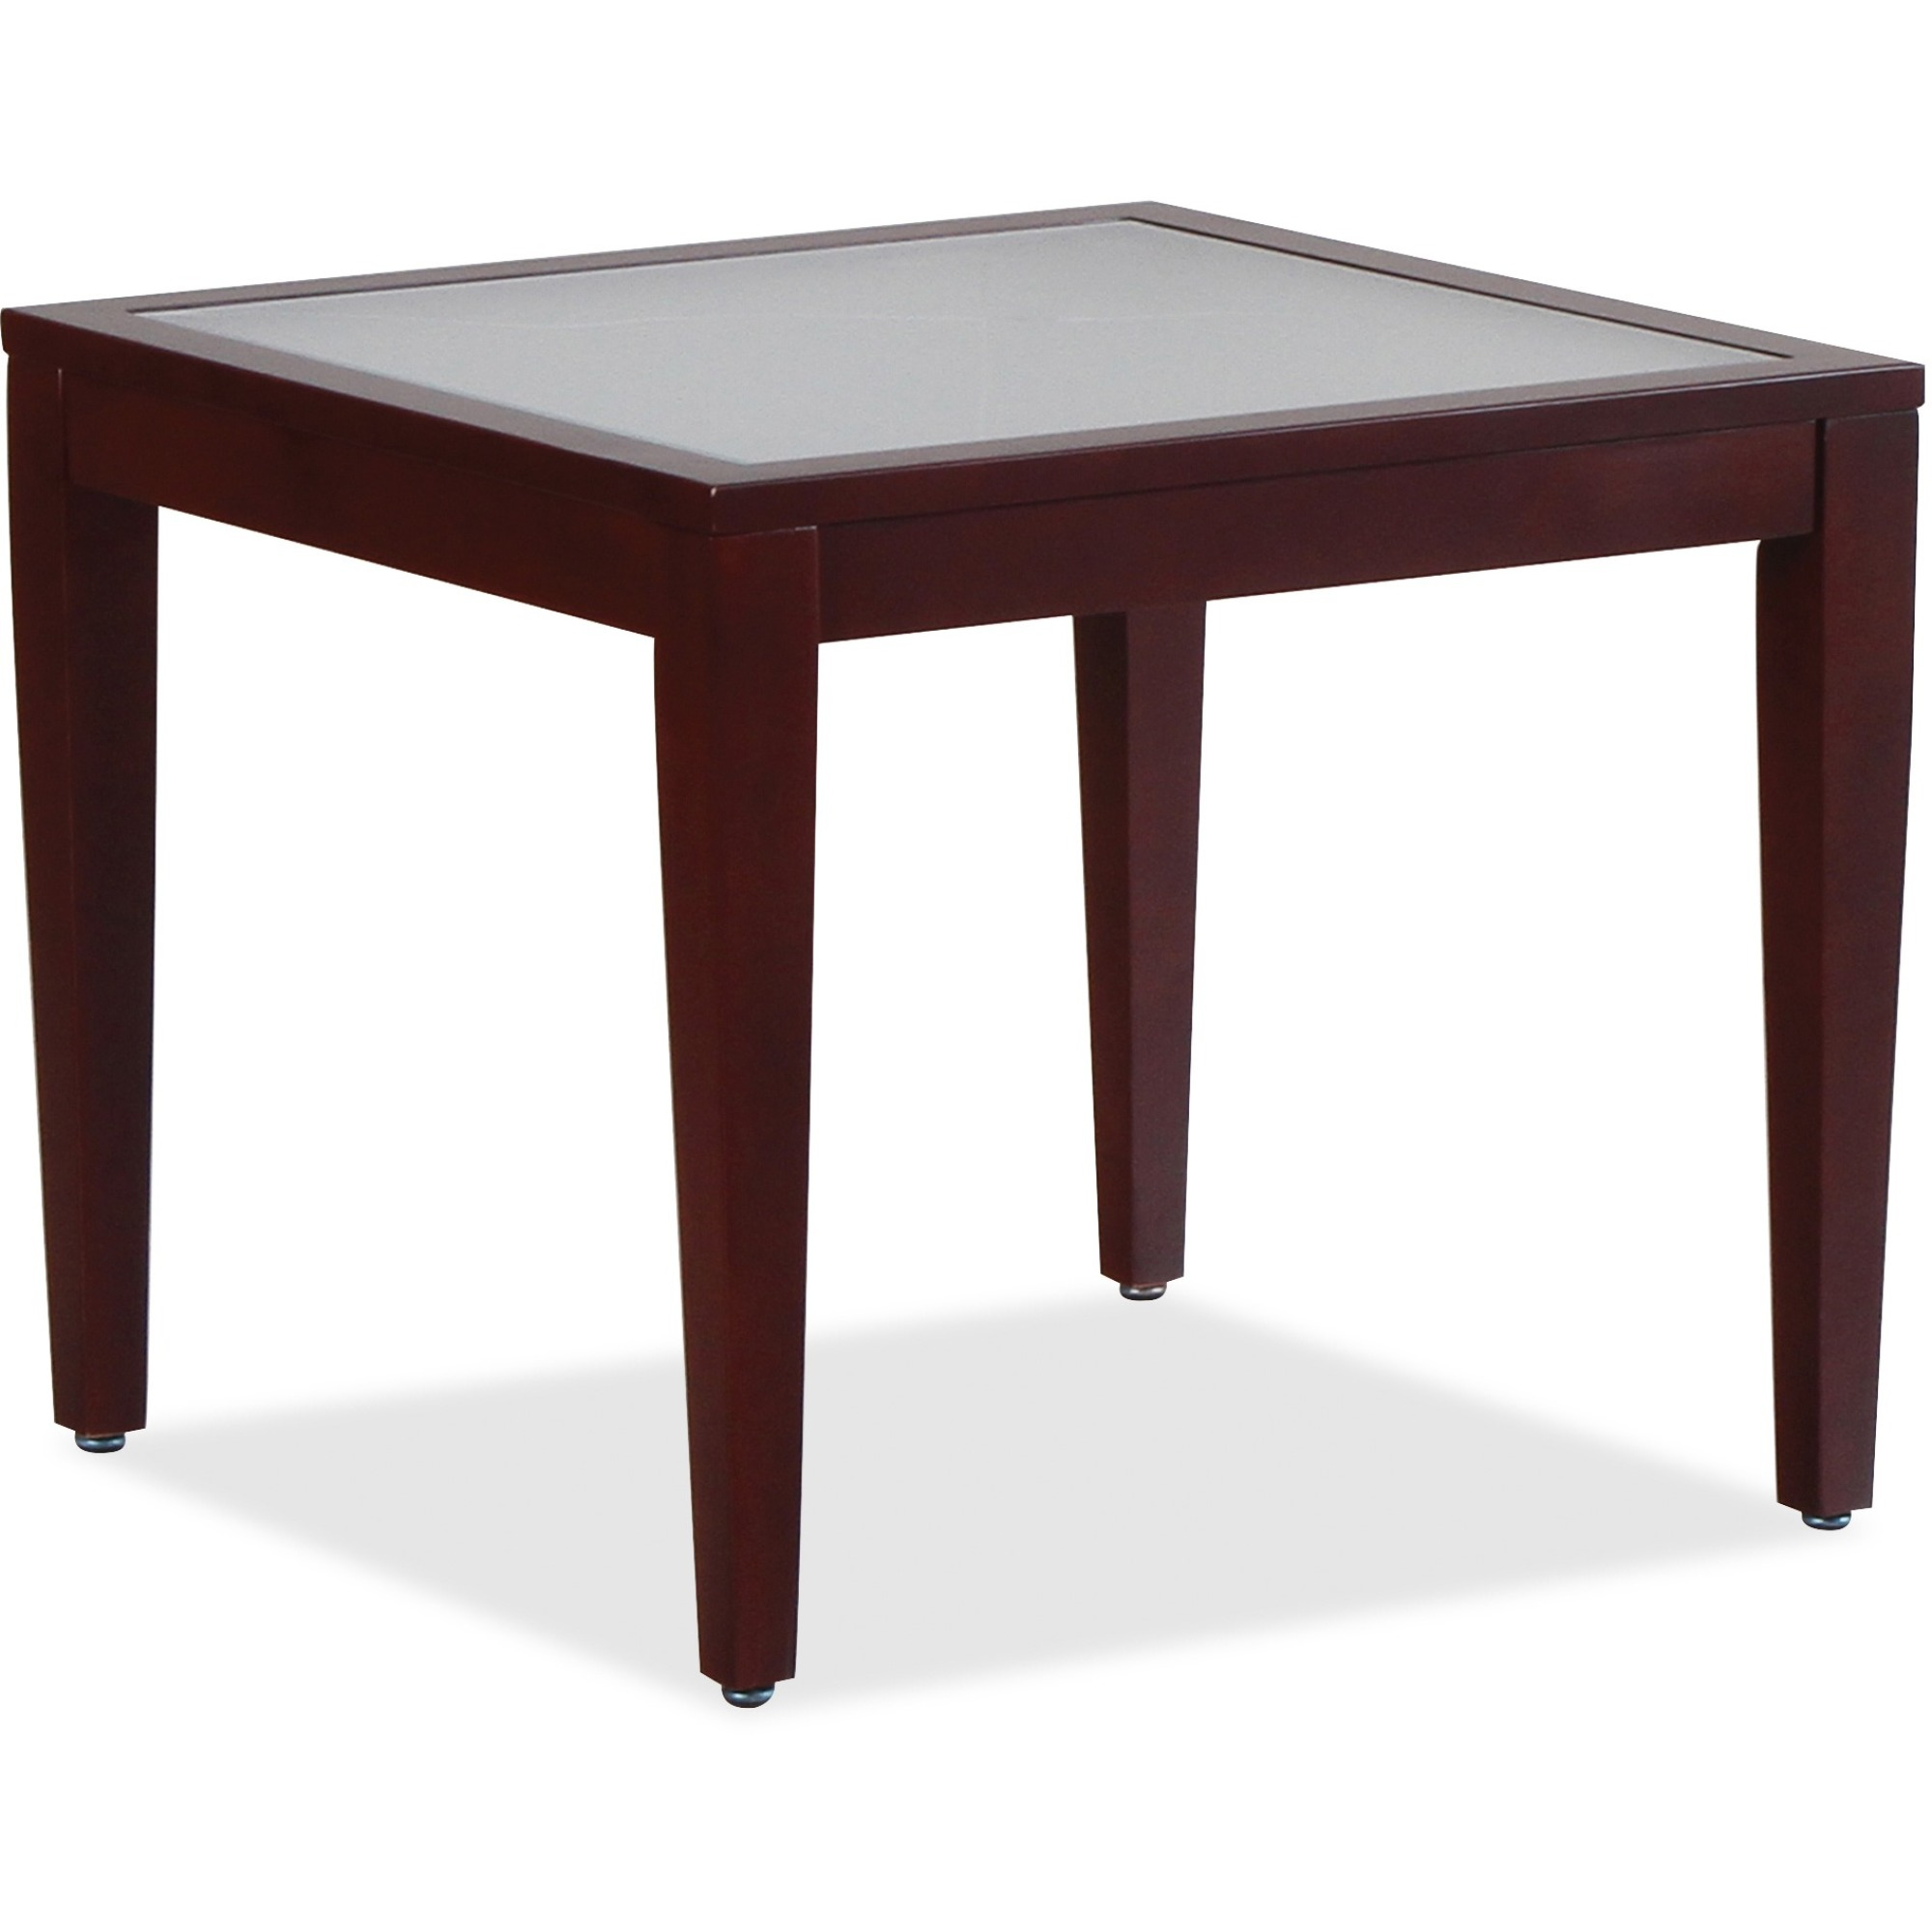 selkirk cellulars office supplies corp furniture square glass accent table lorell top mahogany frame four leg base legs walnut corner coffee decor ideas marble dining room set